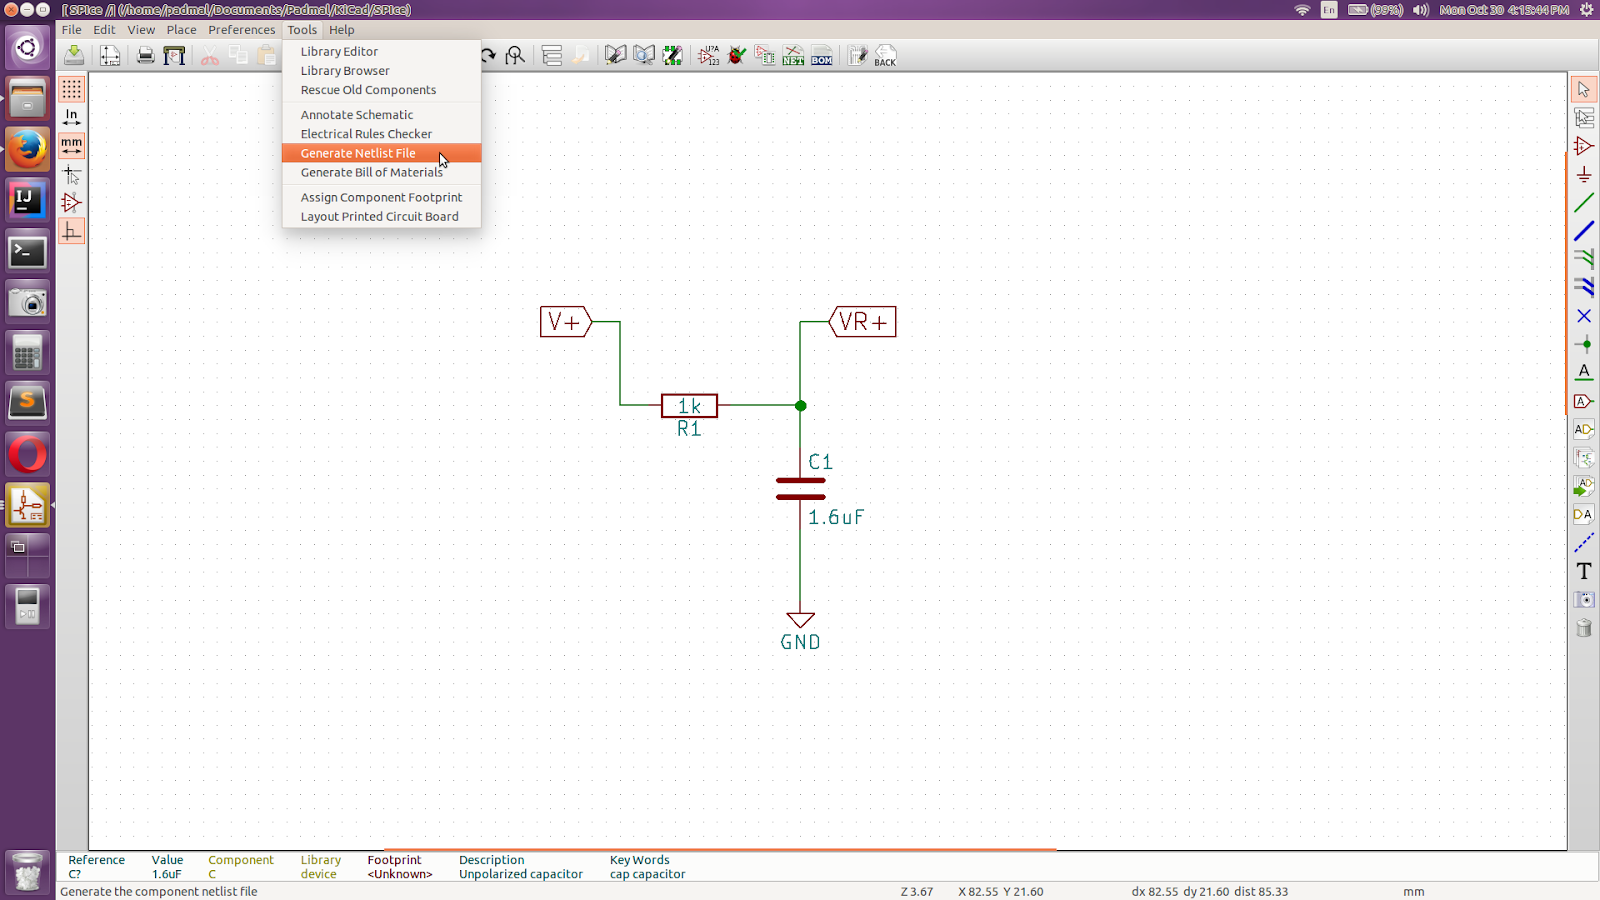 Kicad Simulation To Validate Circuitry In Pslab Device Blog Pcb Circuit Diagram Software The Test Procedures Carried Out Ensure Functions Is Described This Once Complete Generate